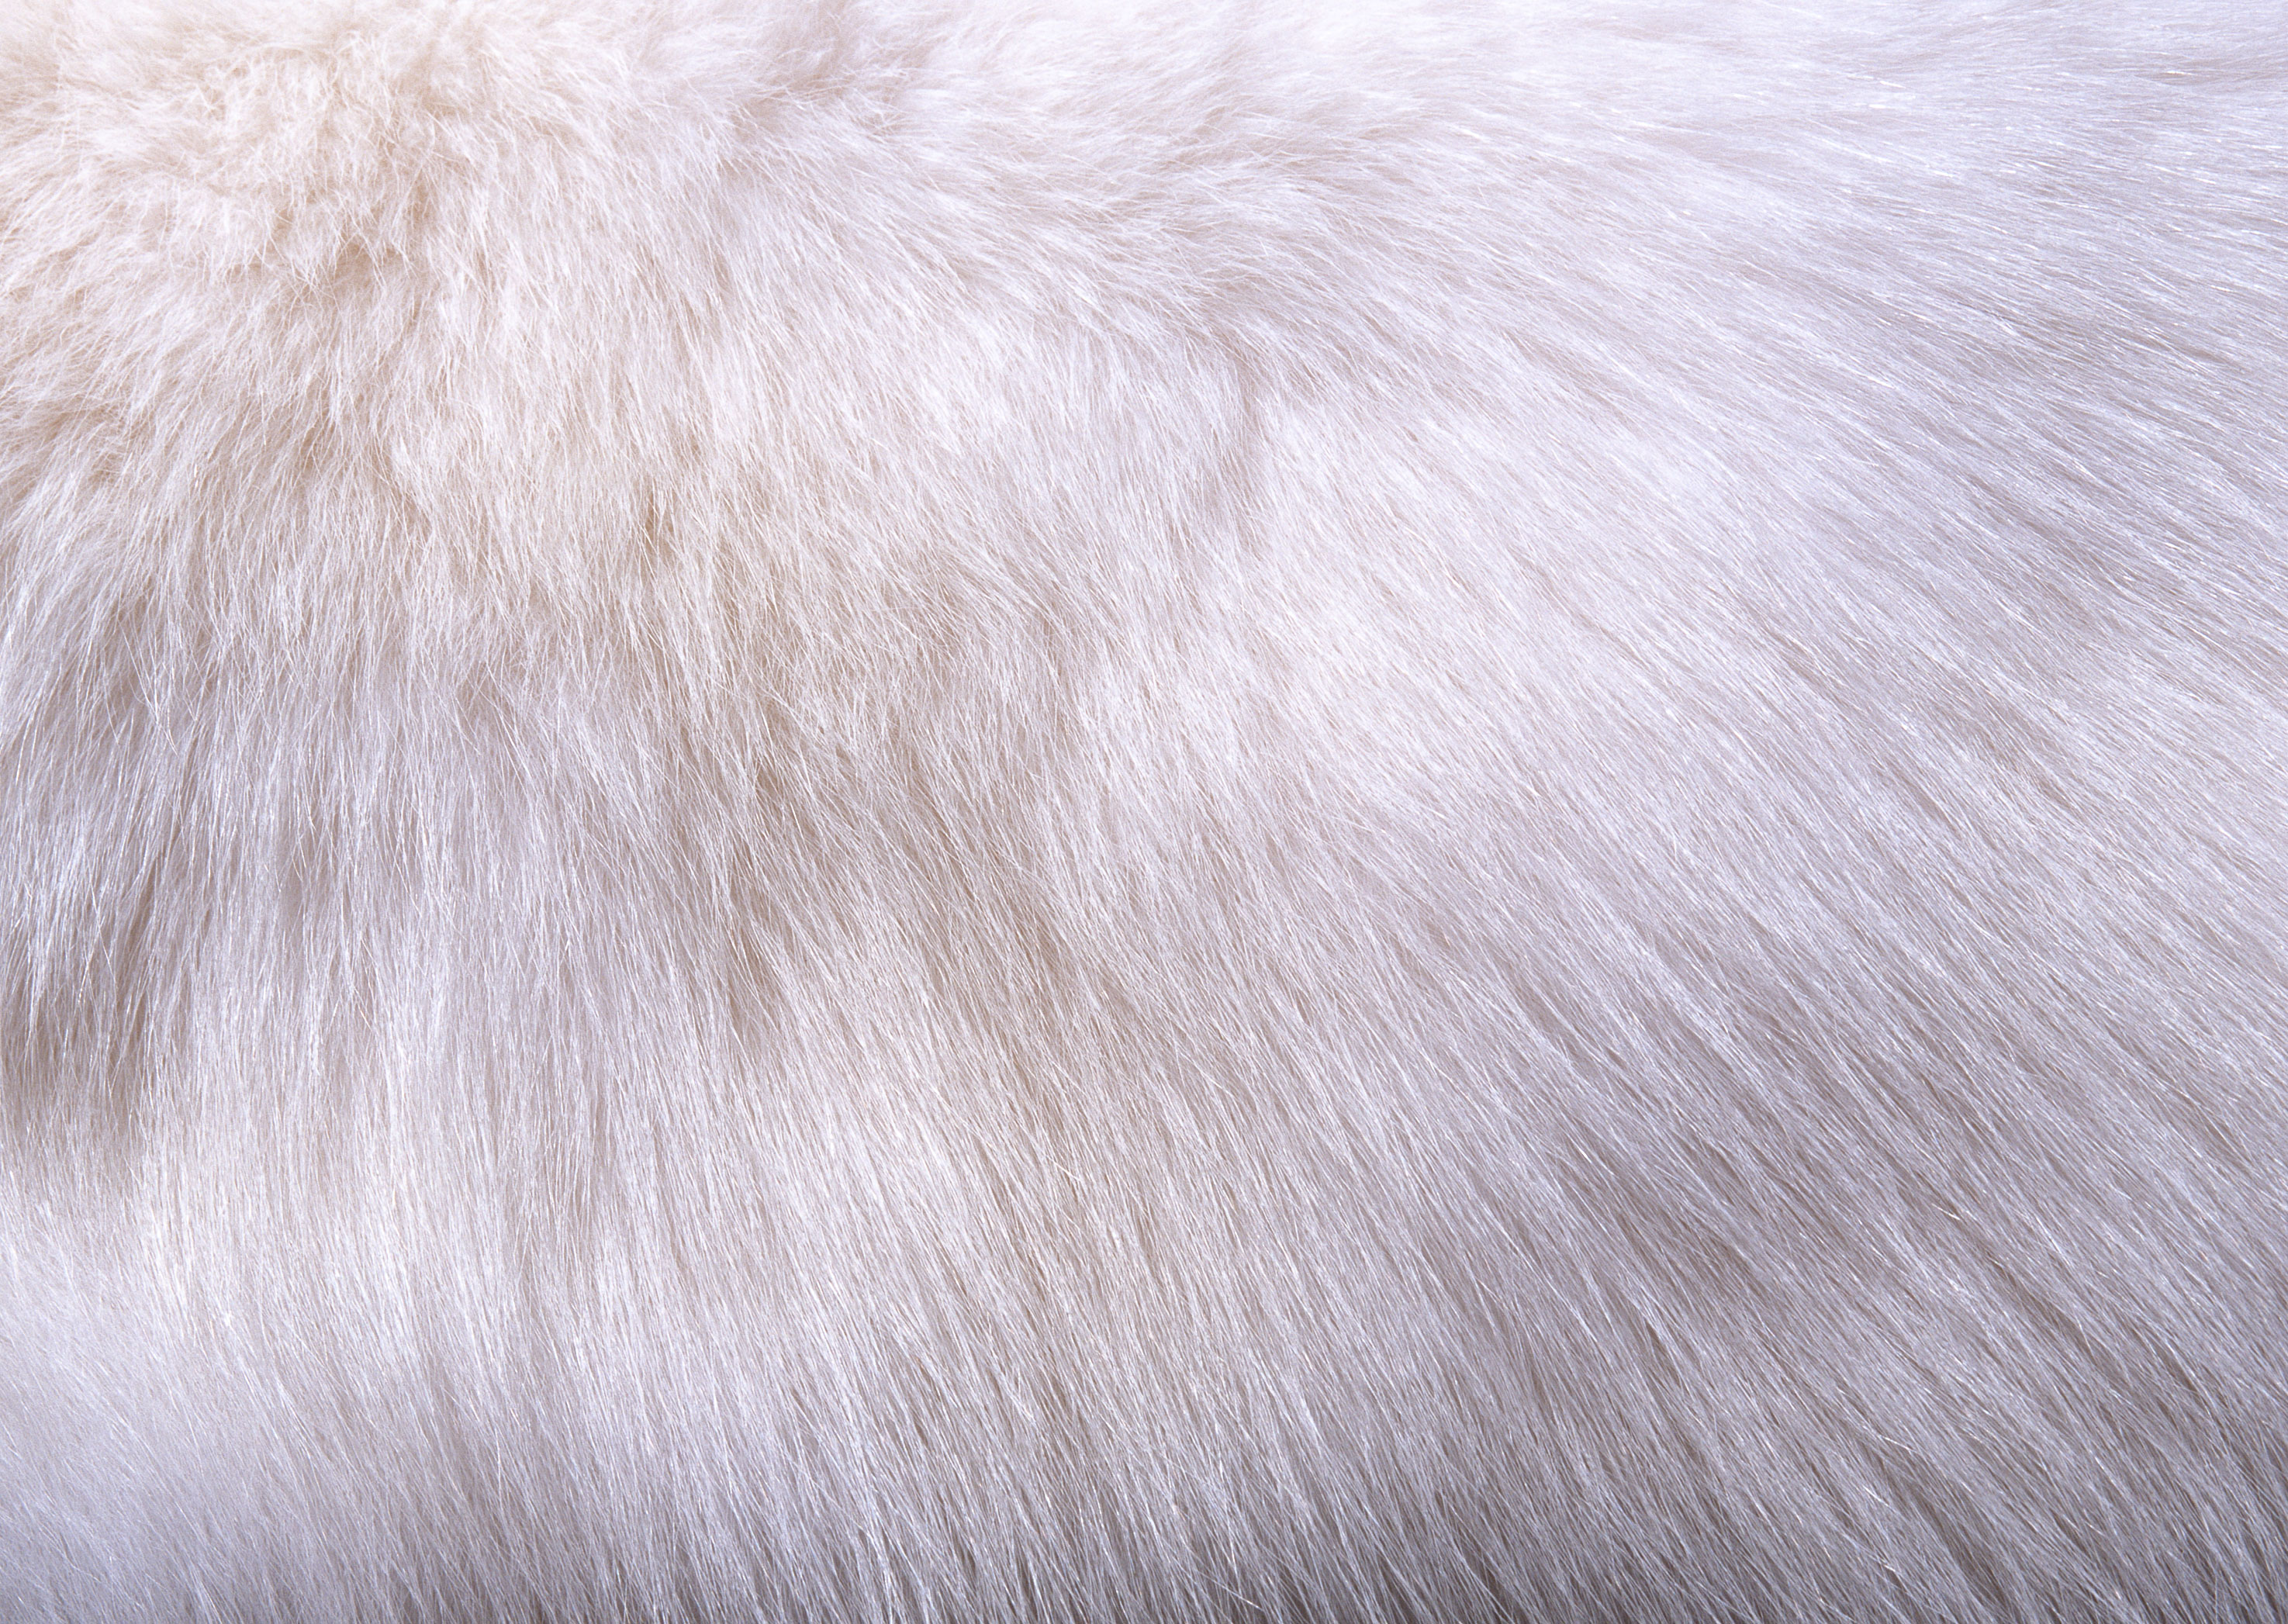 Download texture White fur texture background image 2950x2094